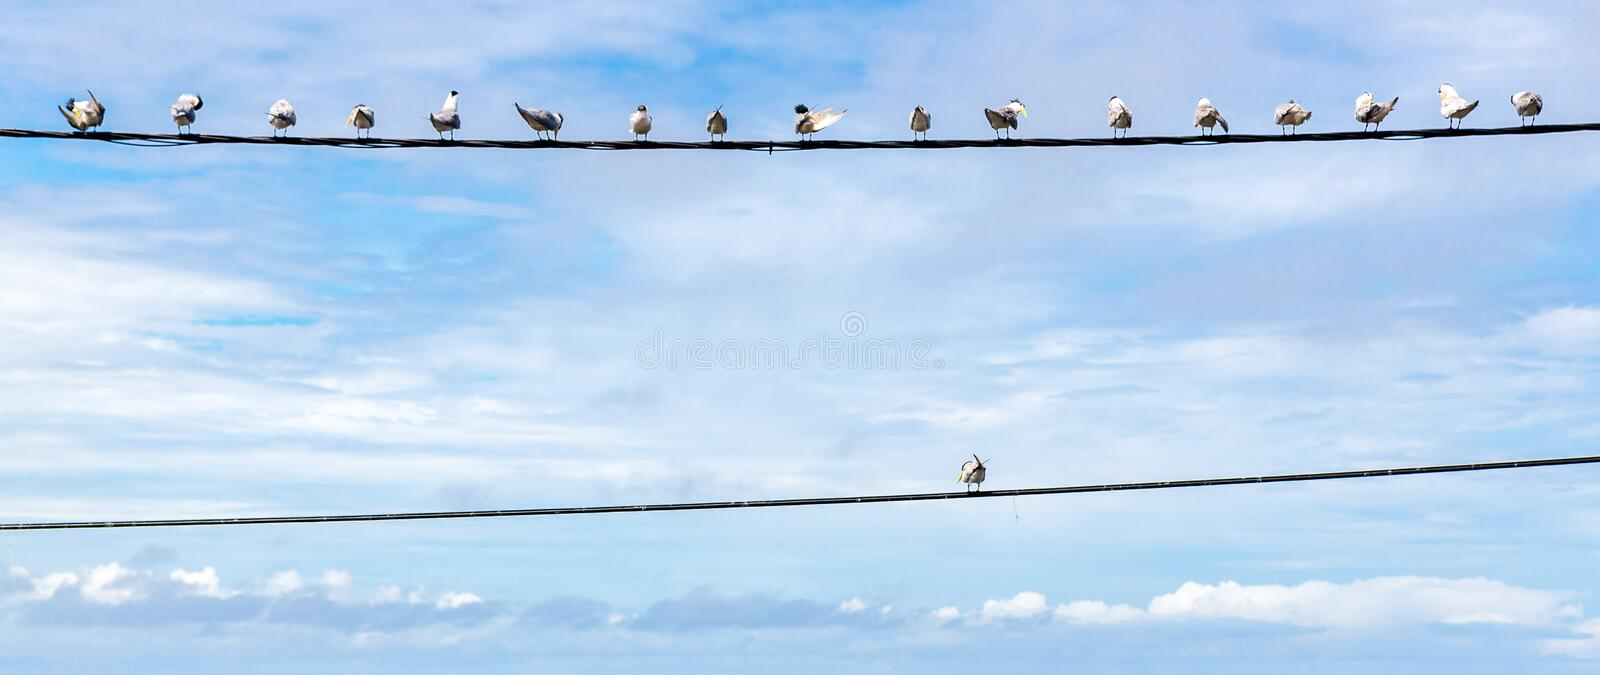 Individuality symbol, think out of the box, independent thinker concept. Group of pigeon birds on a wire. Individuality symbol, think out of the box royalty free stock photography